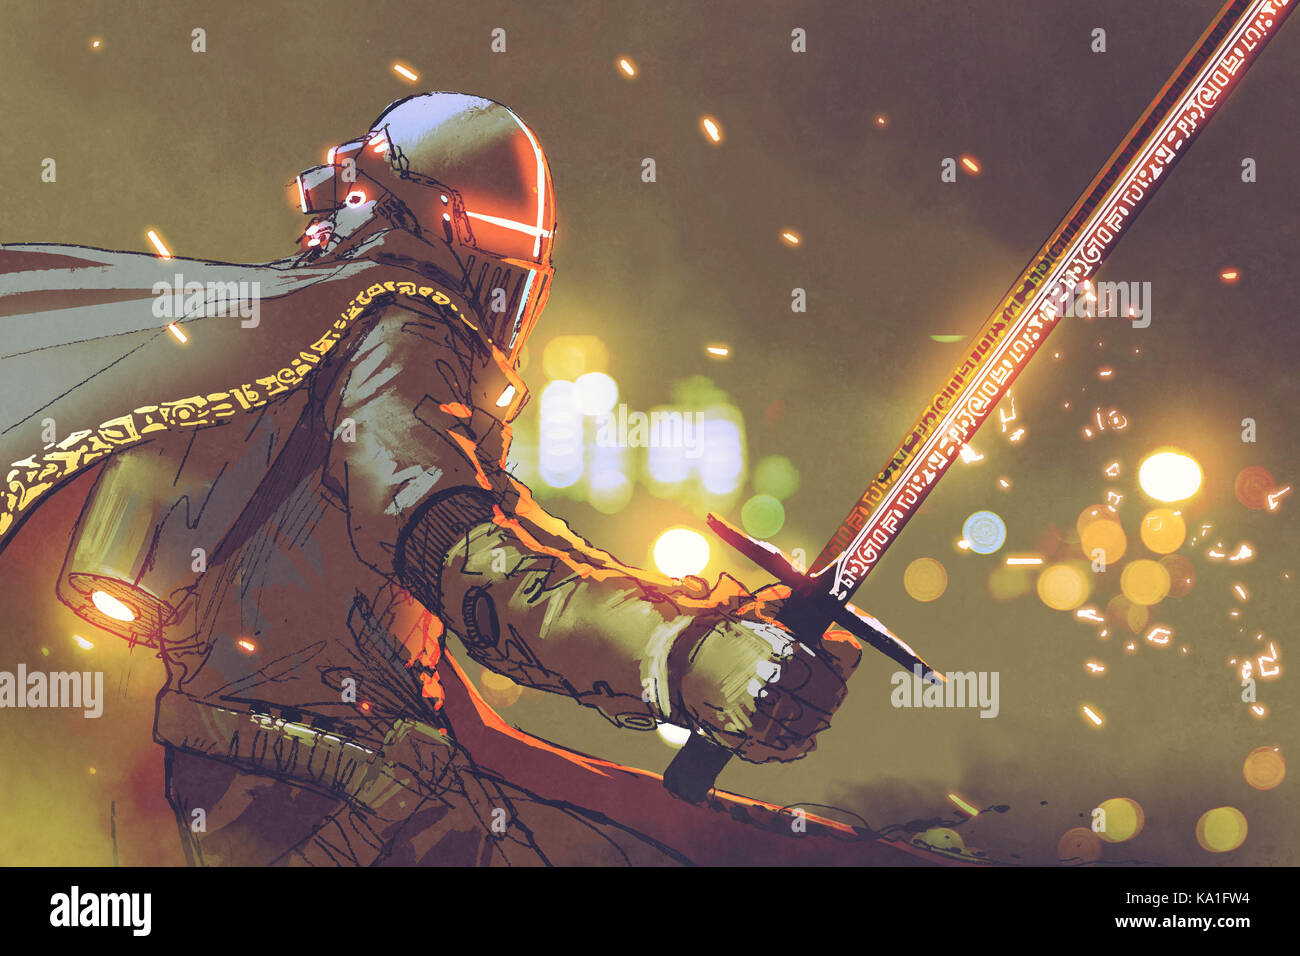 sci-fi character of astro-knight in futuristic armour holding magic sword, digital art style, illustration painting - Stock Image